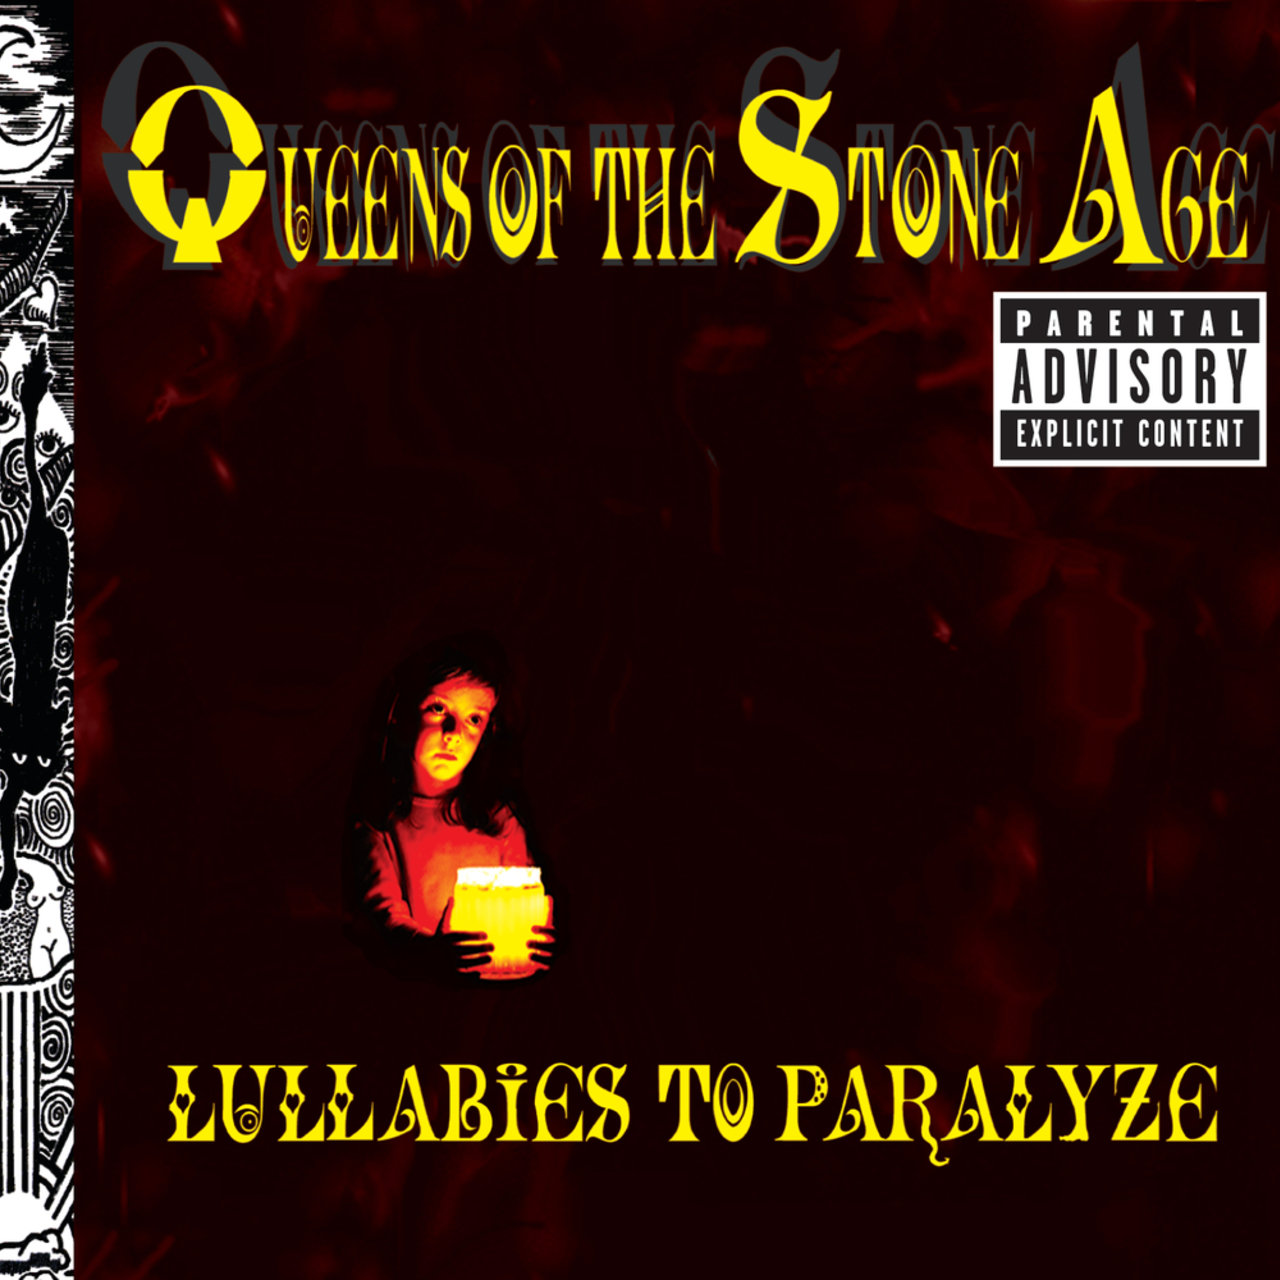 Lullabies To Paralyze (UK Only Version)